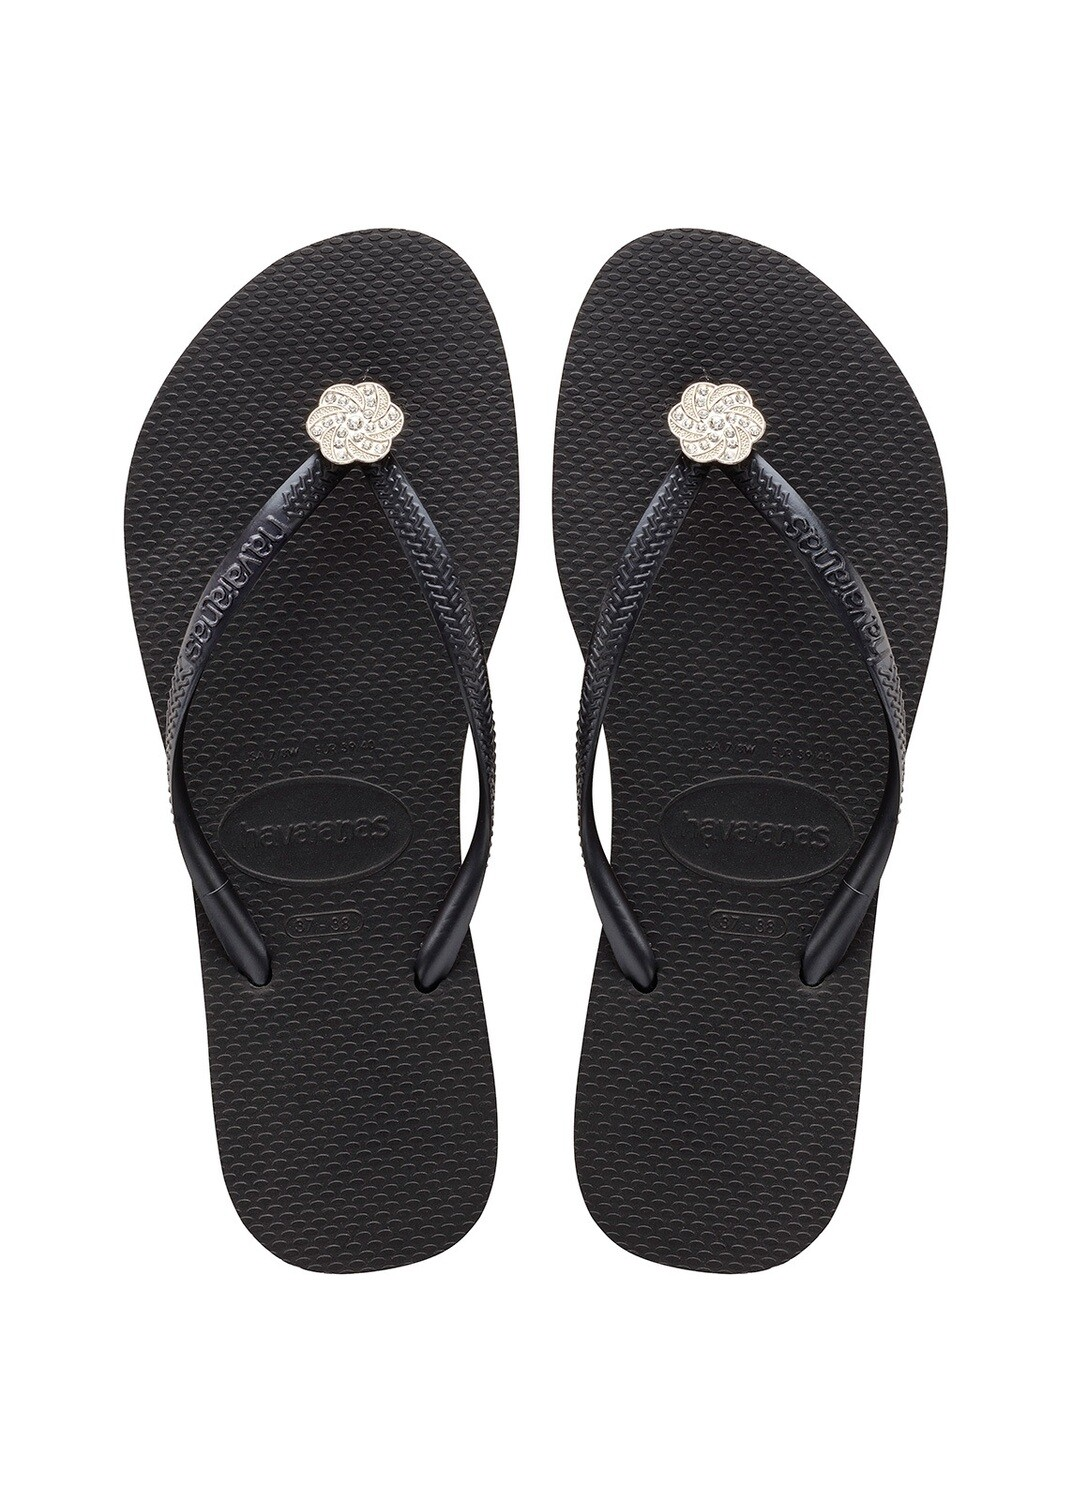 Havaiana_SLIM CRYSTAL POEM Sandal_ BLACK/METALLIC DARK GREY_390